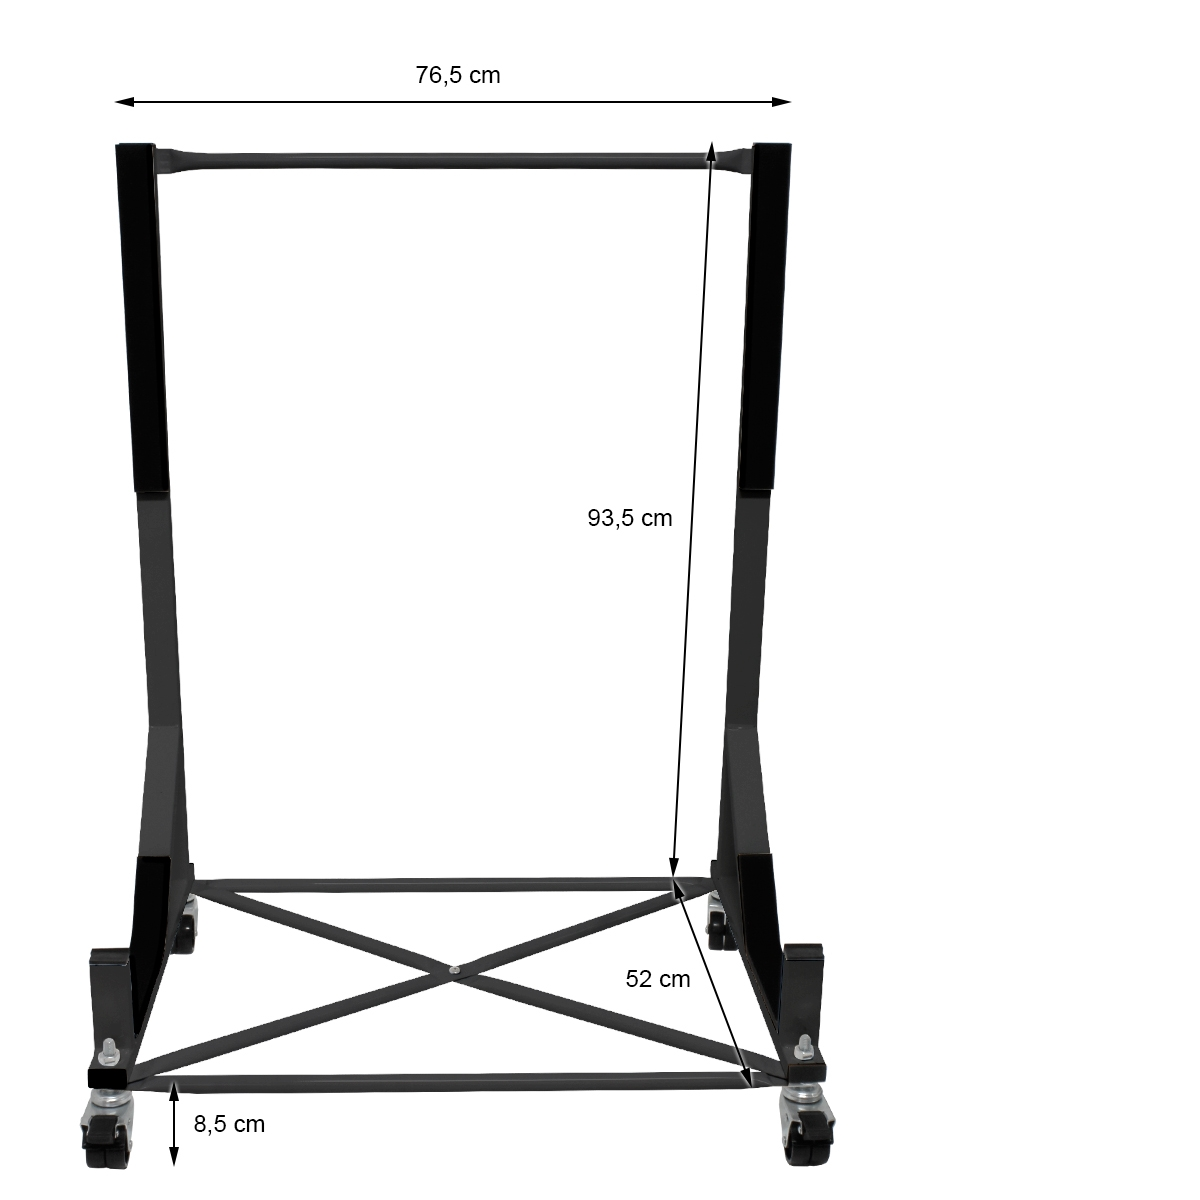 Convertible Roof Hardtop Stand Trolley Black Carrier With